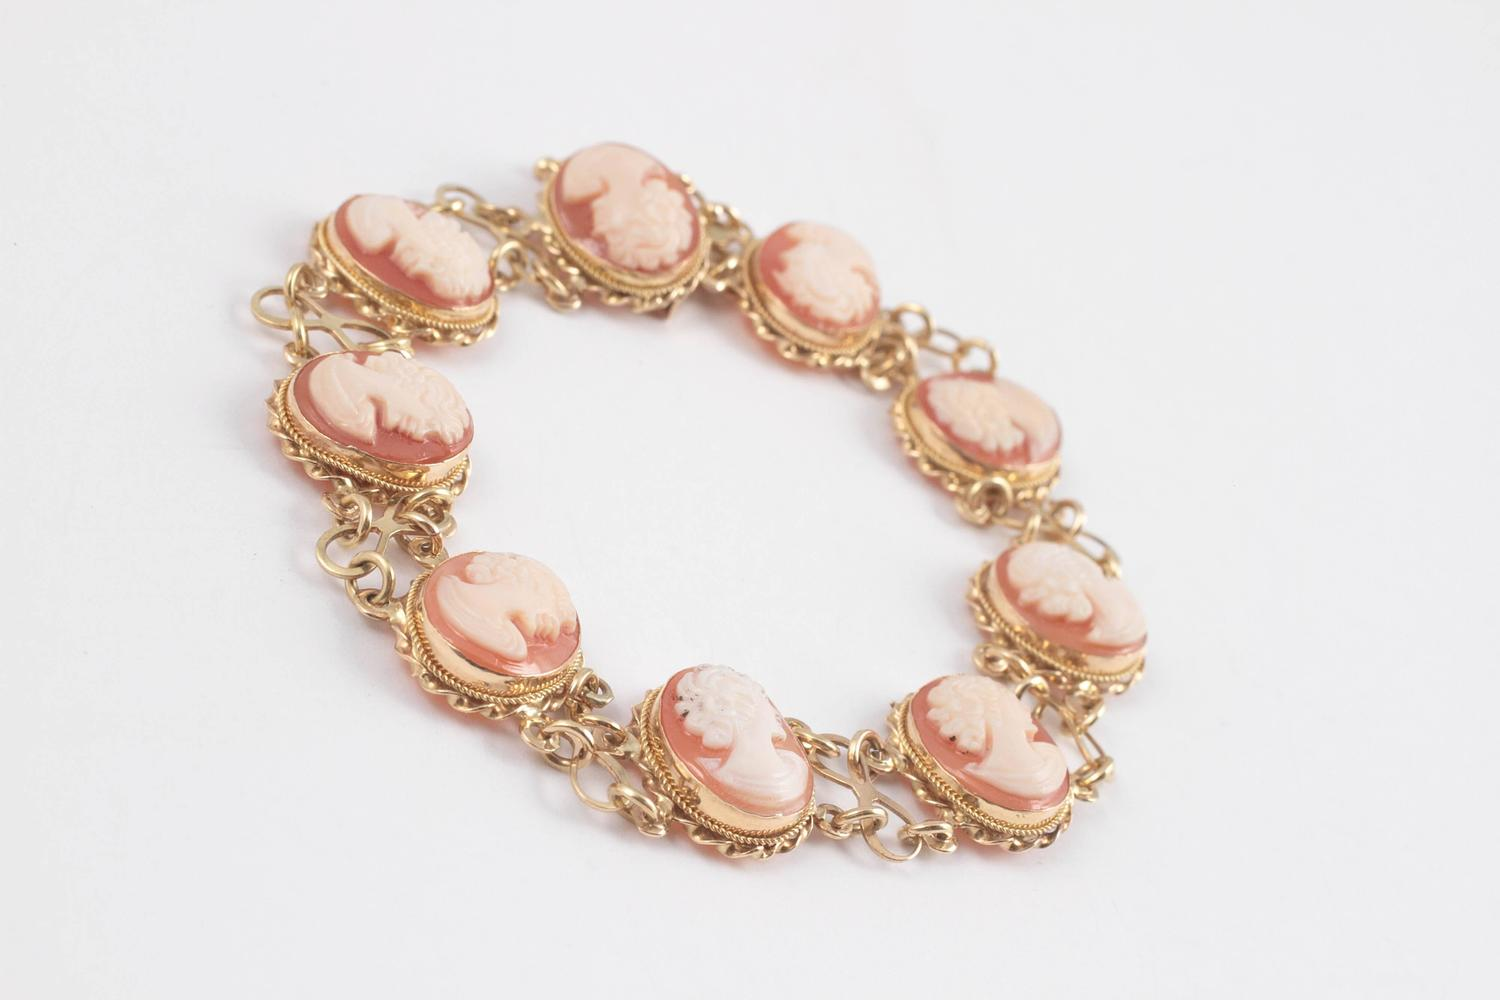 Italian Cameo Gold Bracelet For Sale At 1stdibs